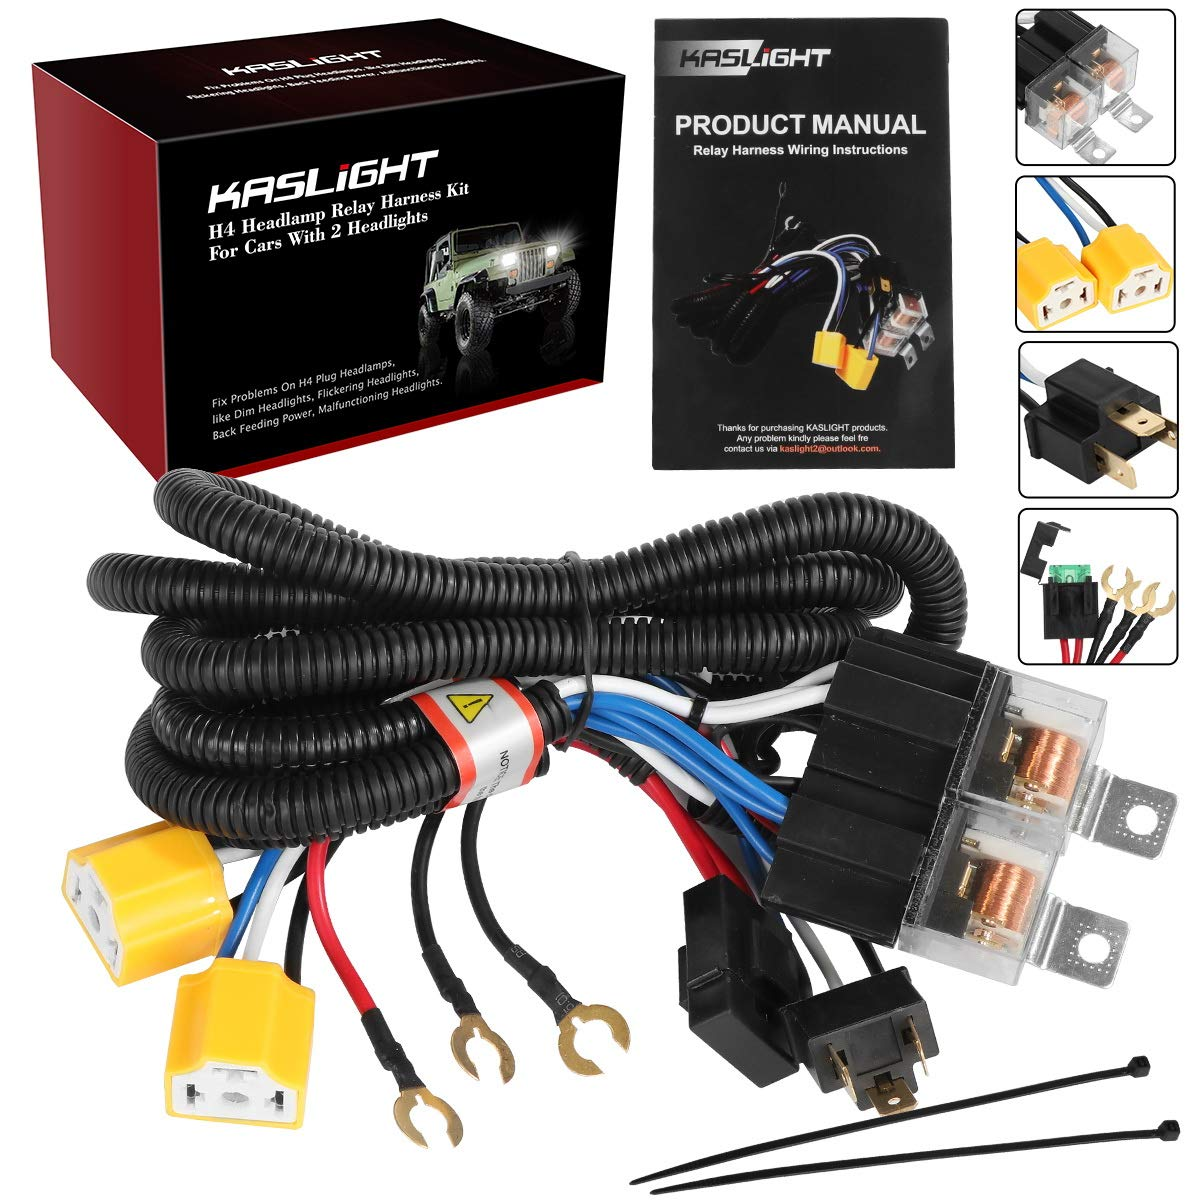 1Set 2 Headlight Harness H4 Headlight Relay Harness H6054 H4 Relay Harness Toyota Pickup Headlights H4 Wiring Harness Headlight Relay Kit For Toyota 95-97 Tacoma 88-95 Pickup Fix Dual Ground Problem 71MeZXKnBCL